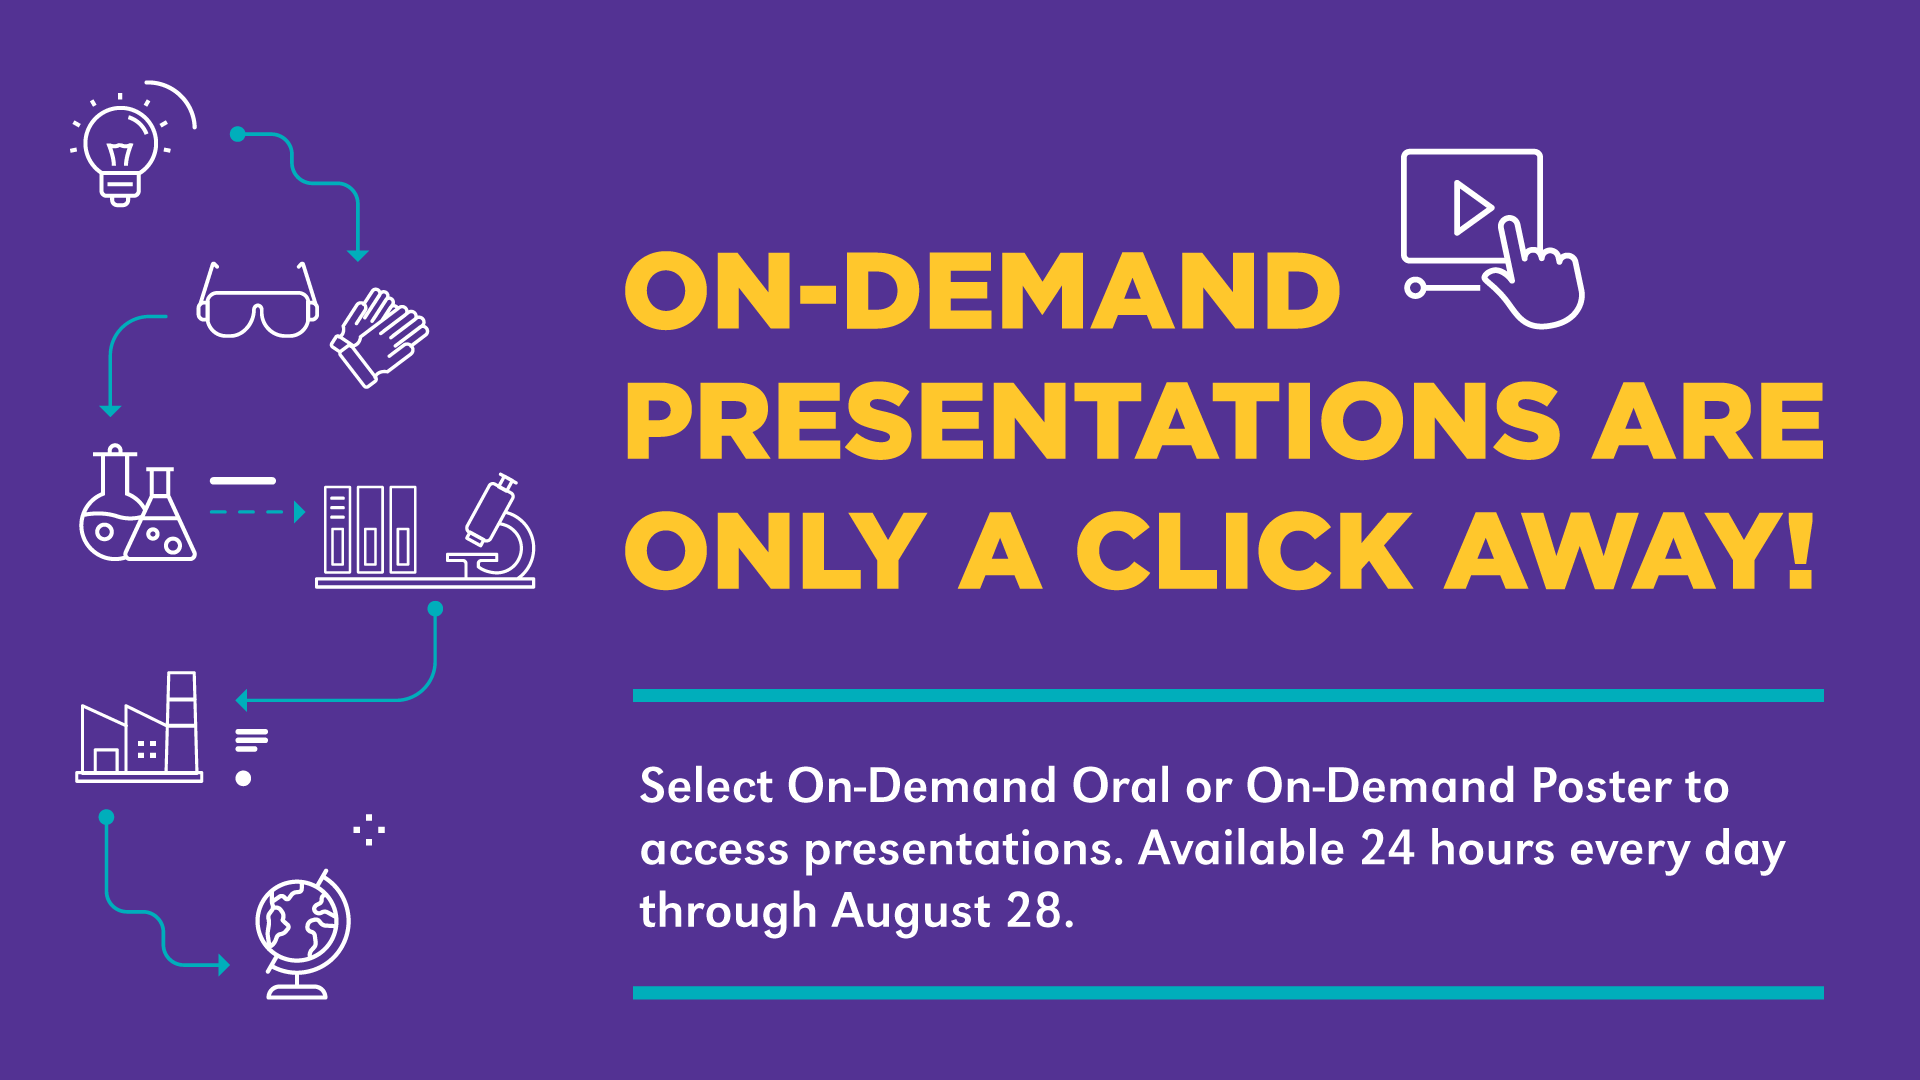 Another virtual sign explains sessions and presentations were available on-demand.